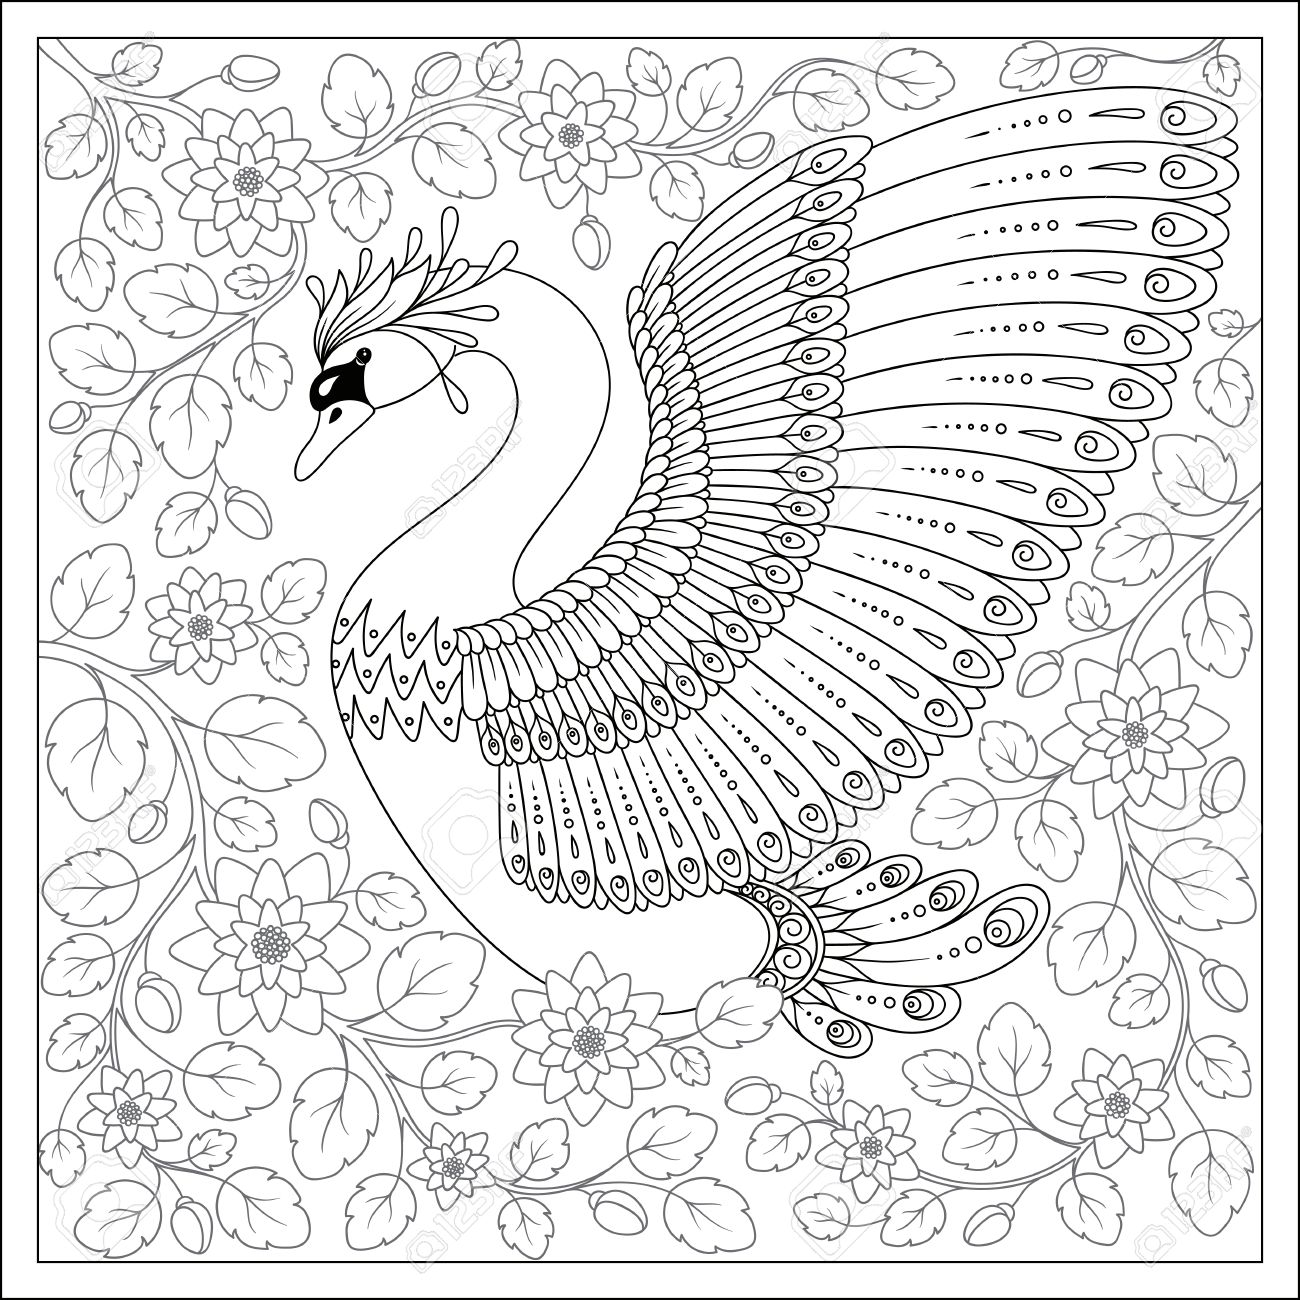 Exotic coloring page | Etsy | 1300x1300